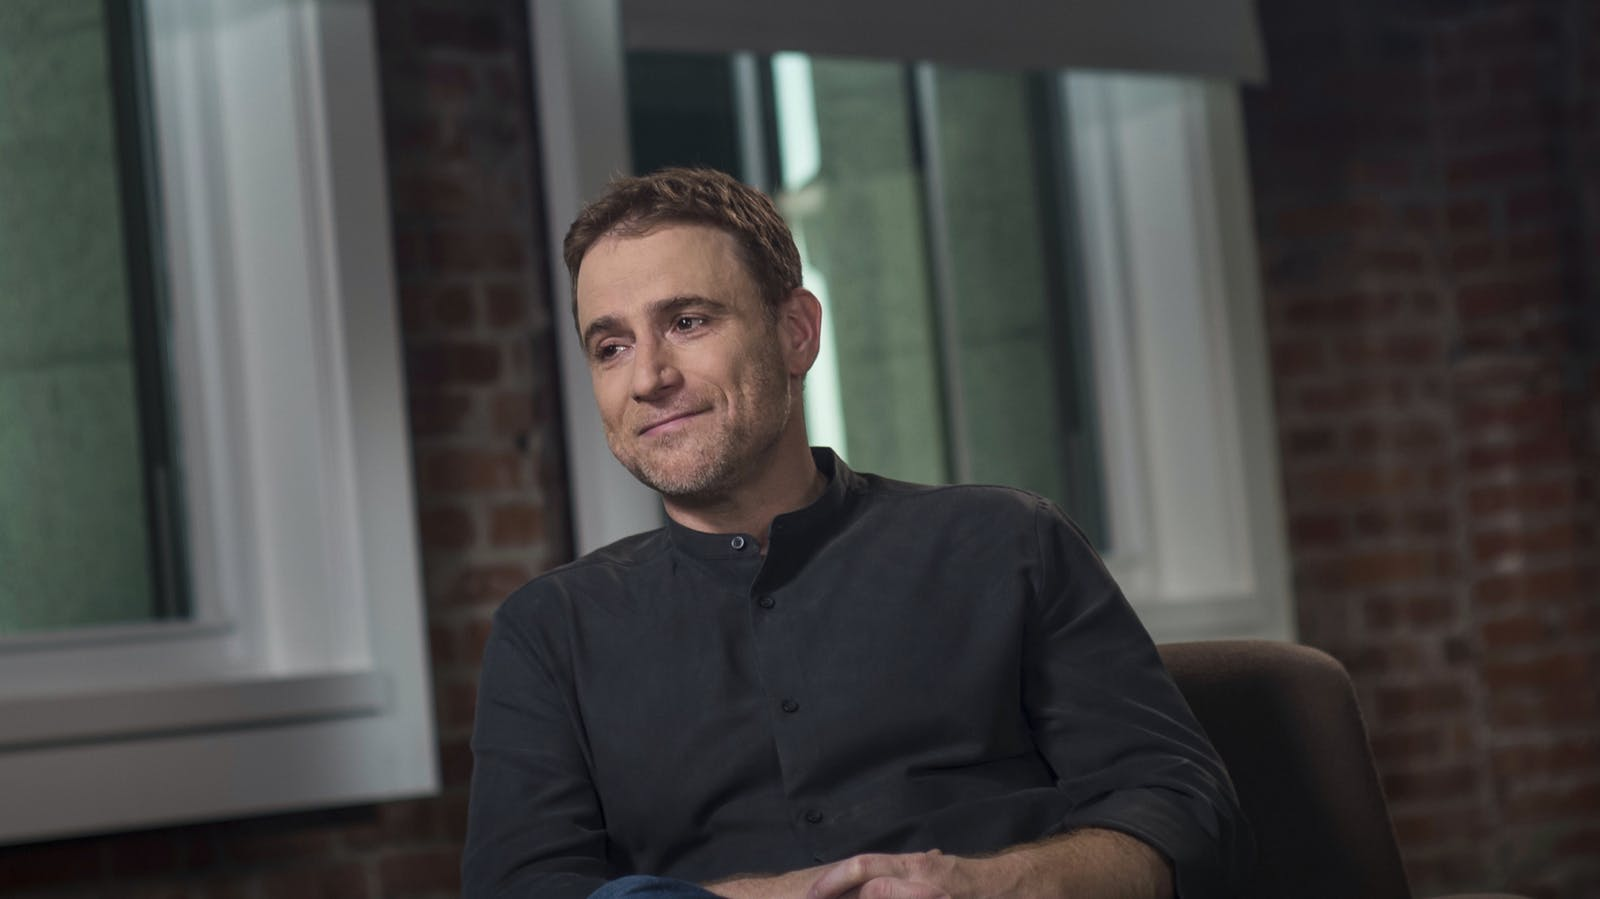 Slack CEO and co-founder Stewart Butterfield. Photo by Bloomberg